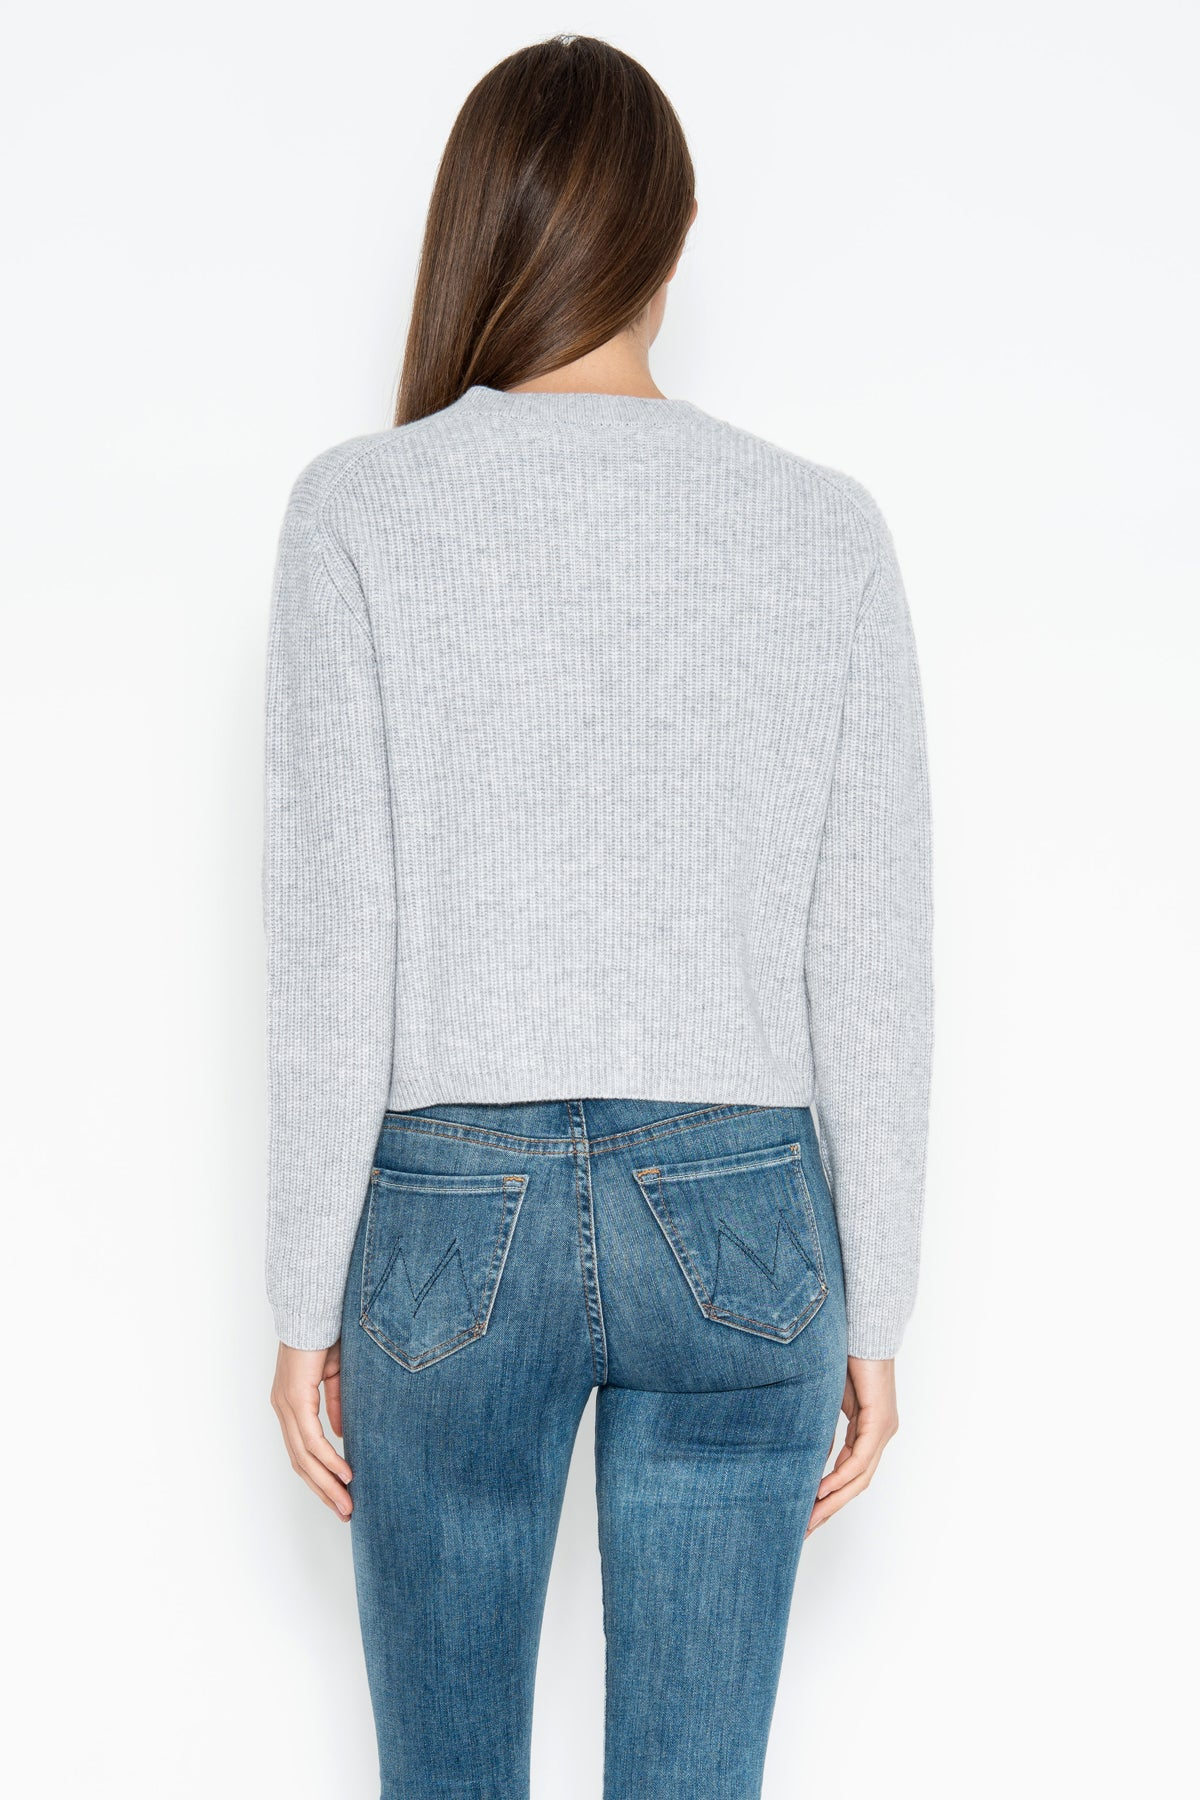 Georgia Crop Cashmere Cardi - Heather Grey